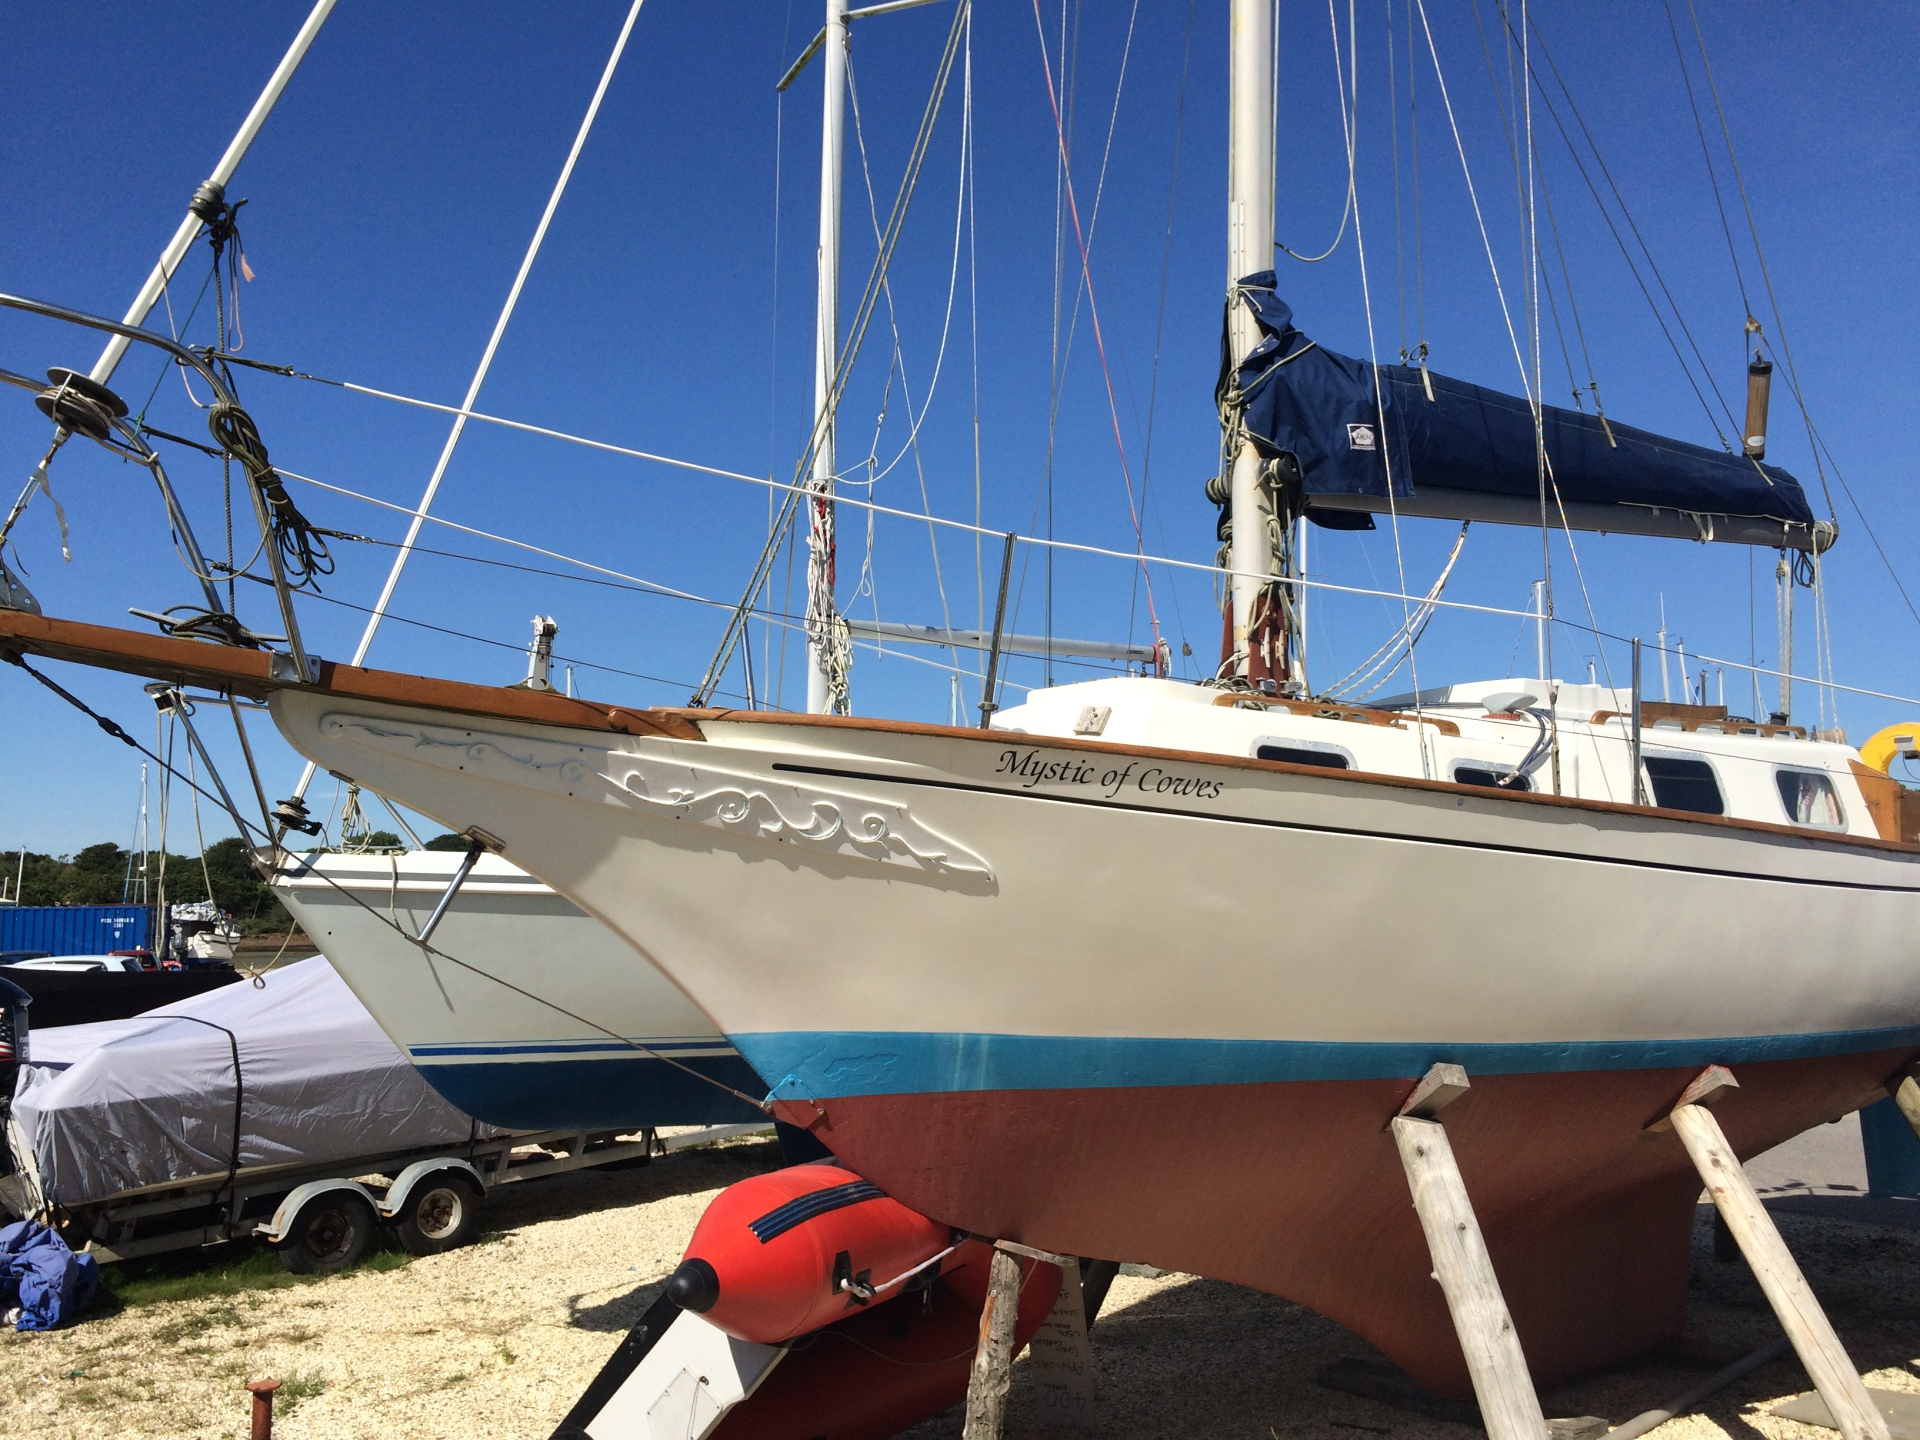 Nantucket Clipper for sale